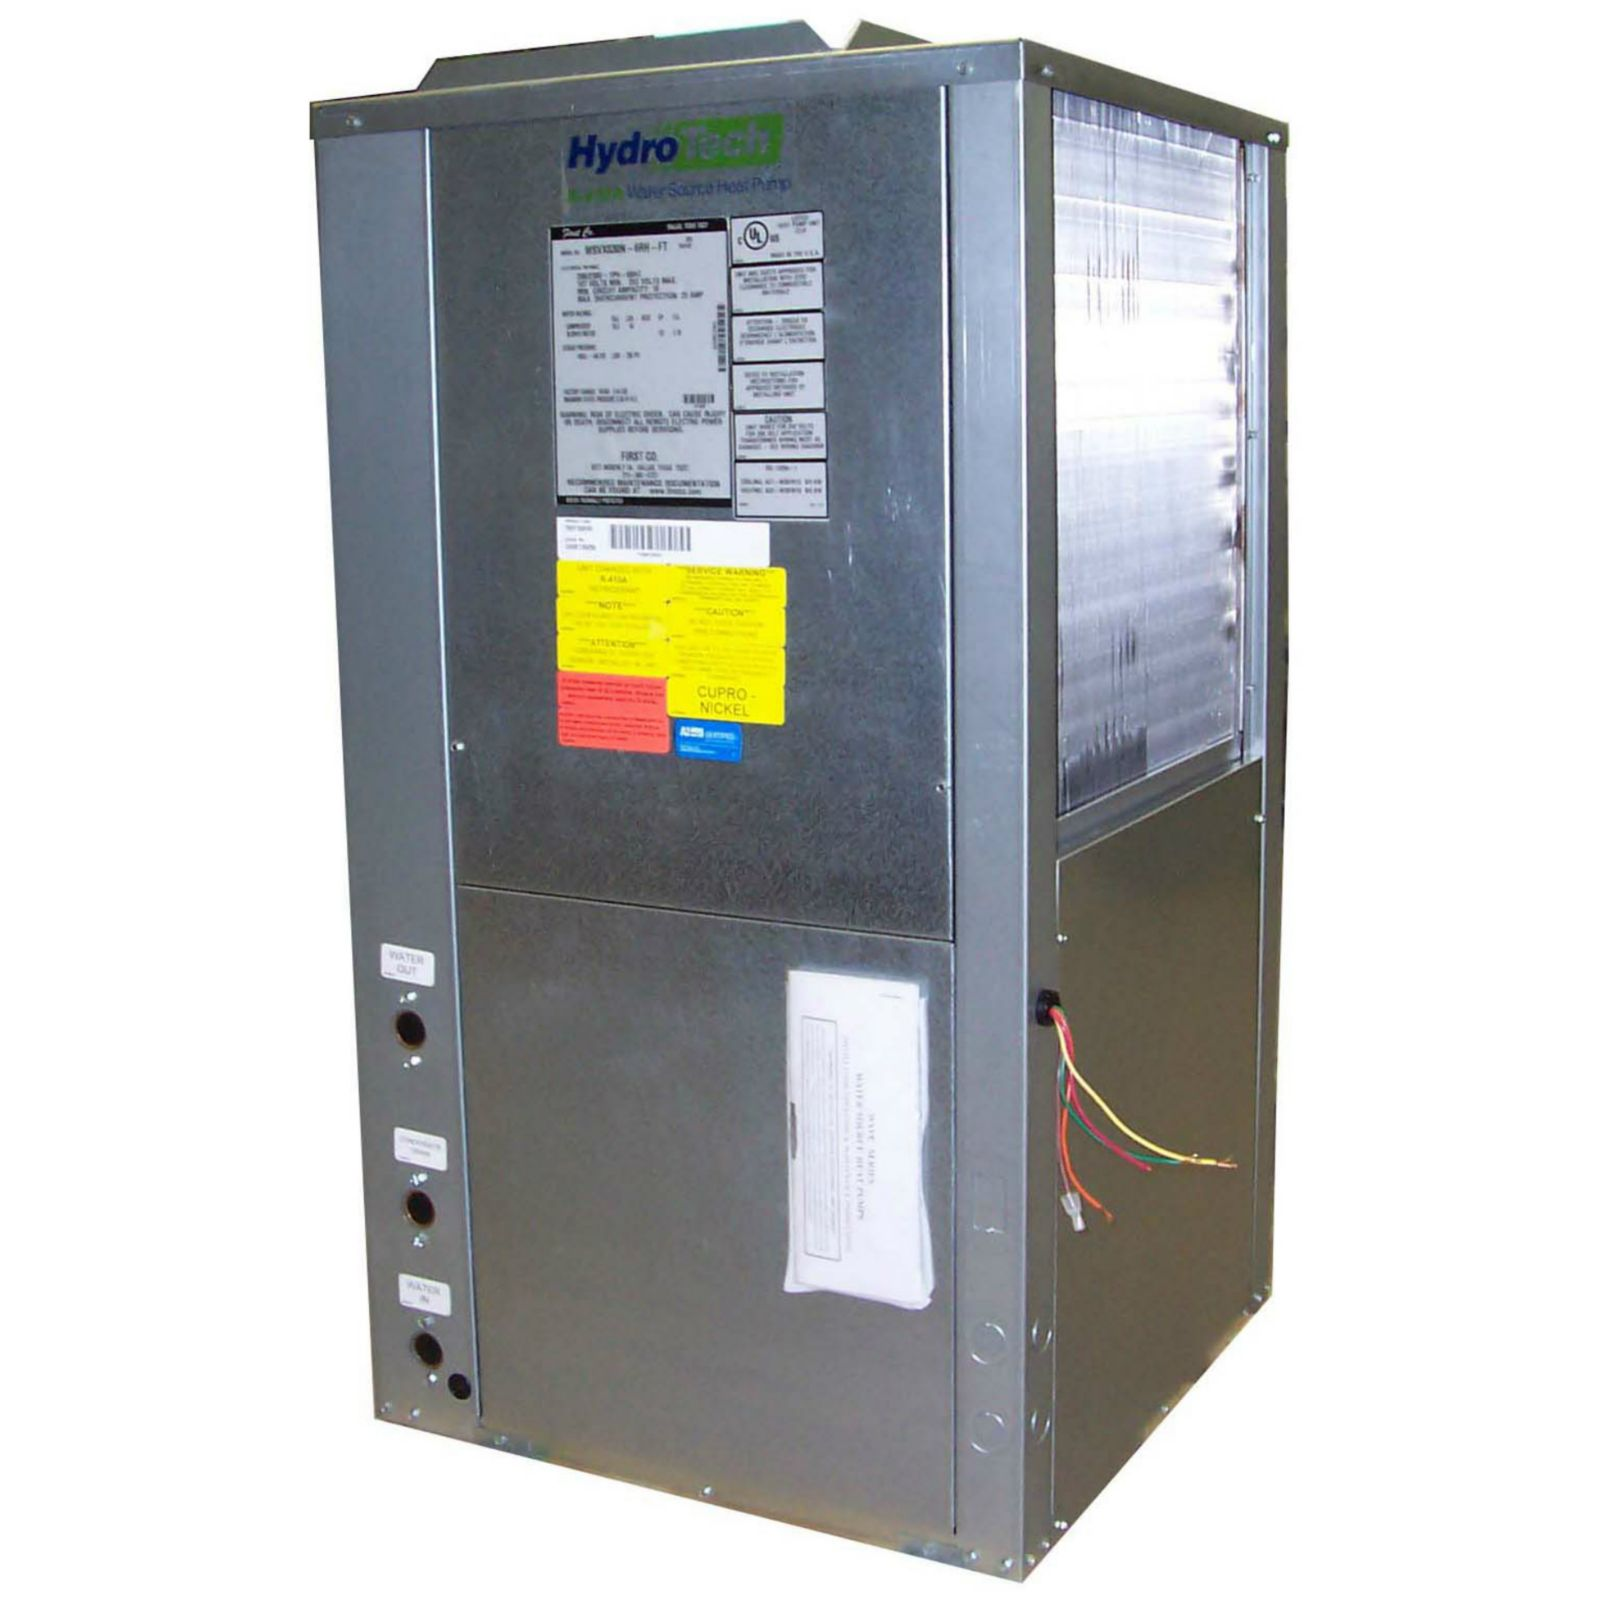 First Co. WSVC048 C E LH FT - Vertical Water Source Heat Pump, 4 Ton, Copper, Left Hand, Top Discharge, 208-230V/3 Phase